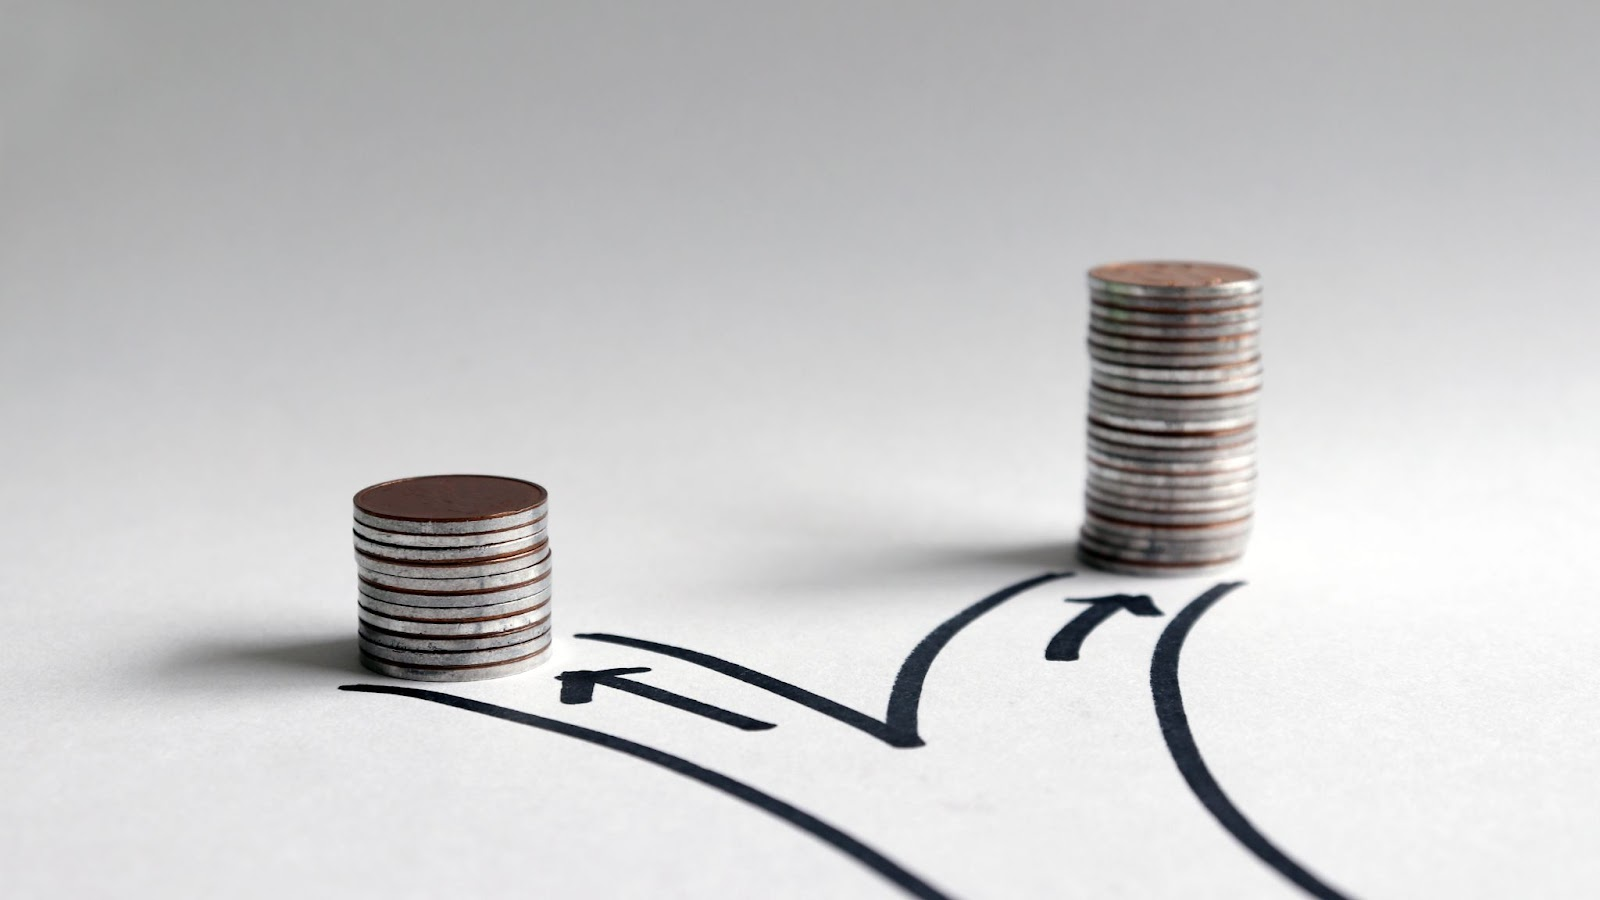 Qualified dividends: Two stacks of coins